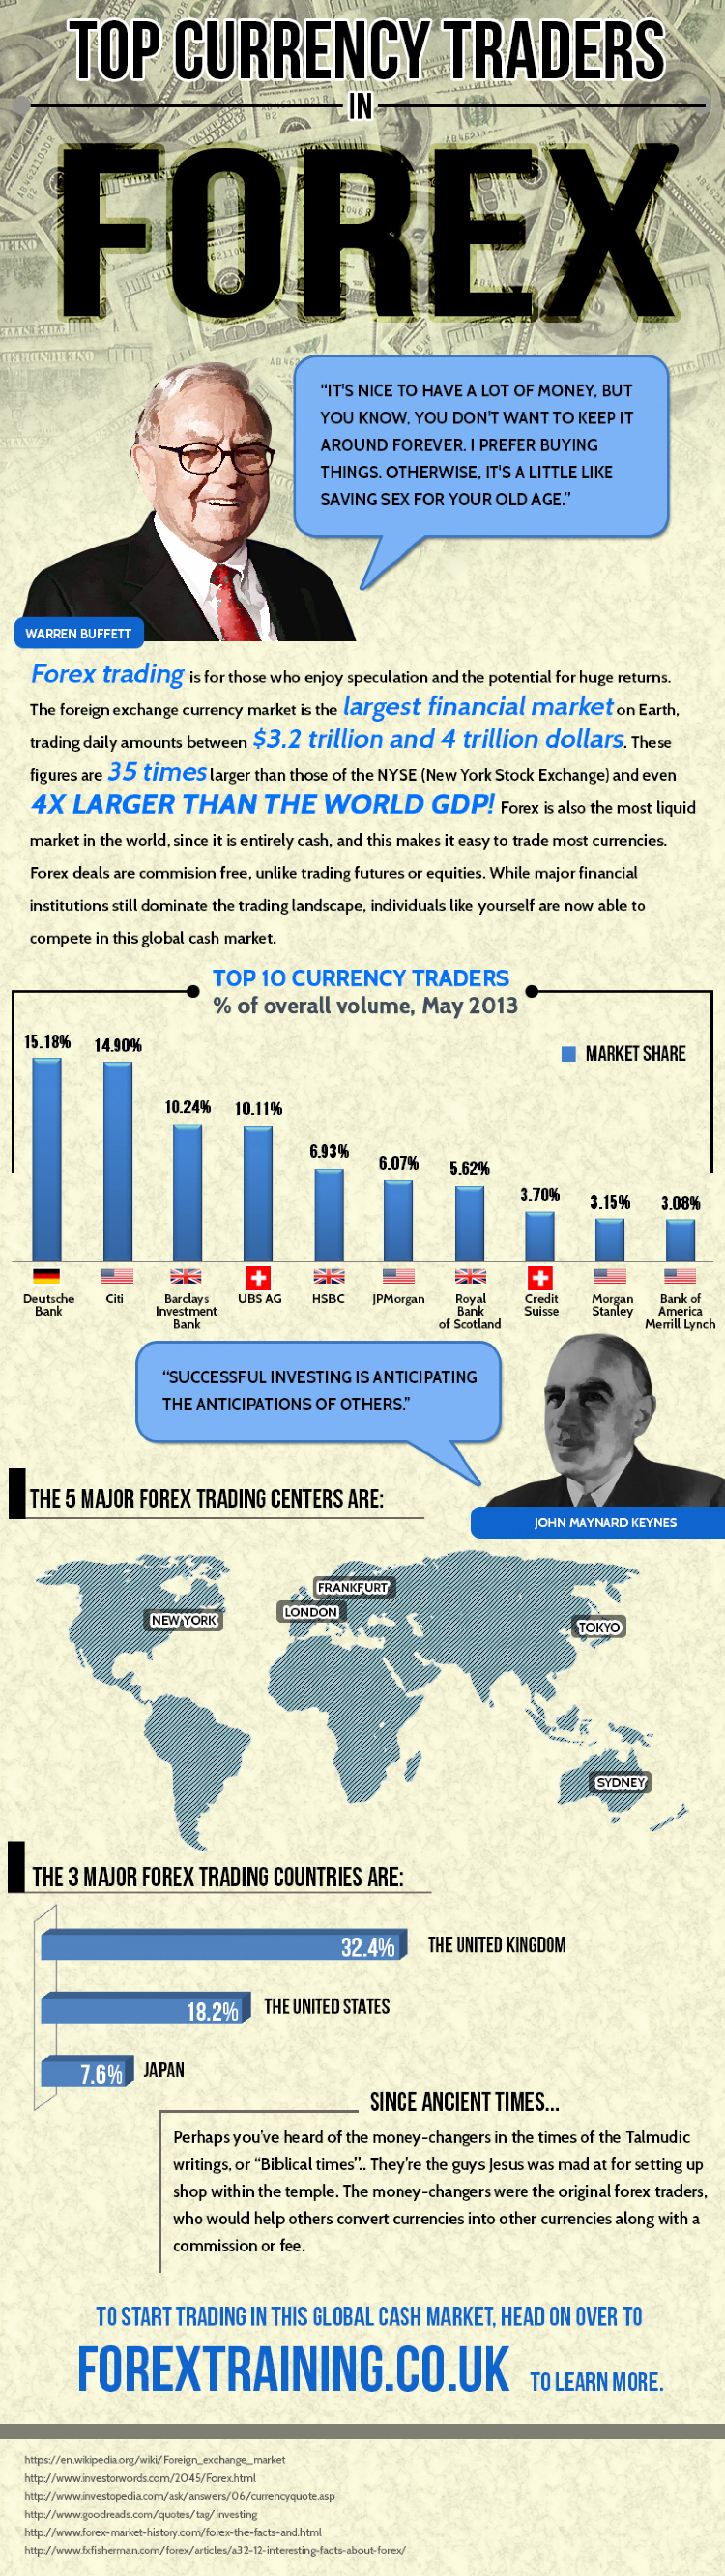 Top Currency Traders in Forex Infographic